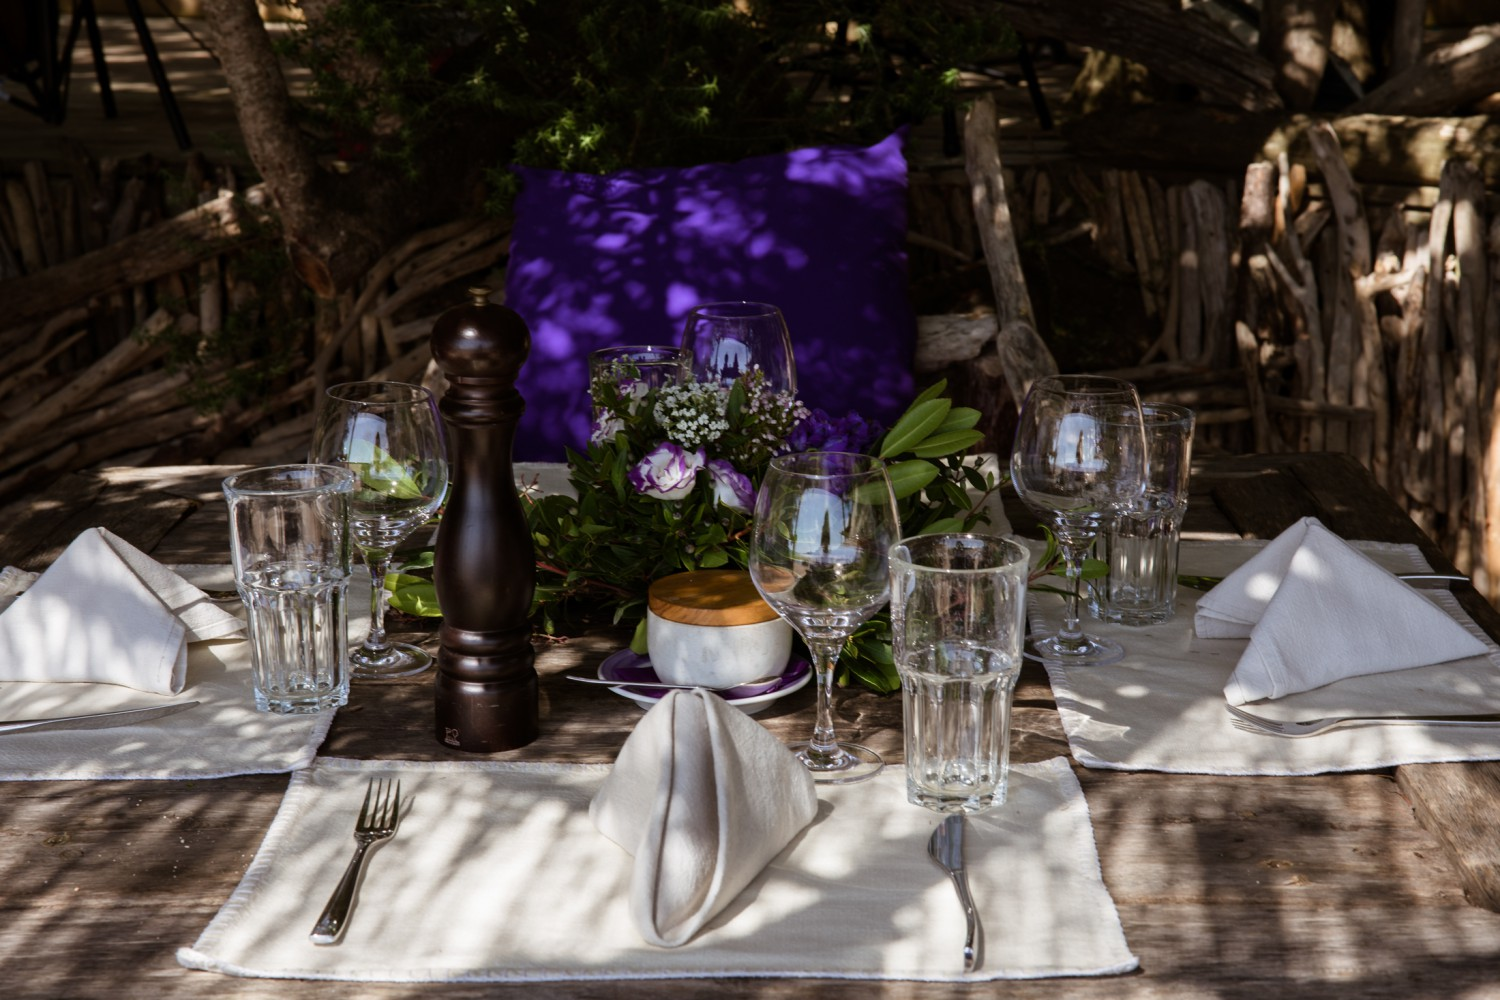 Littleton-Rose-Luxury-Destination-Wedding-Planner-Corsica-France-Justine-and-Tom-Brunch.jpg